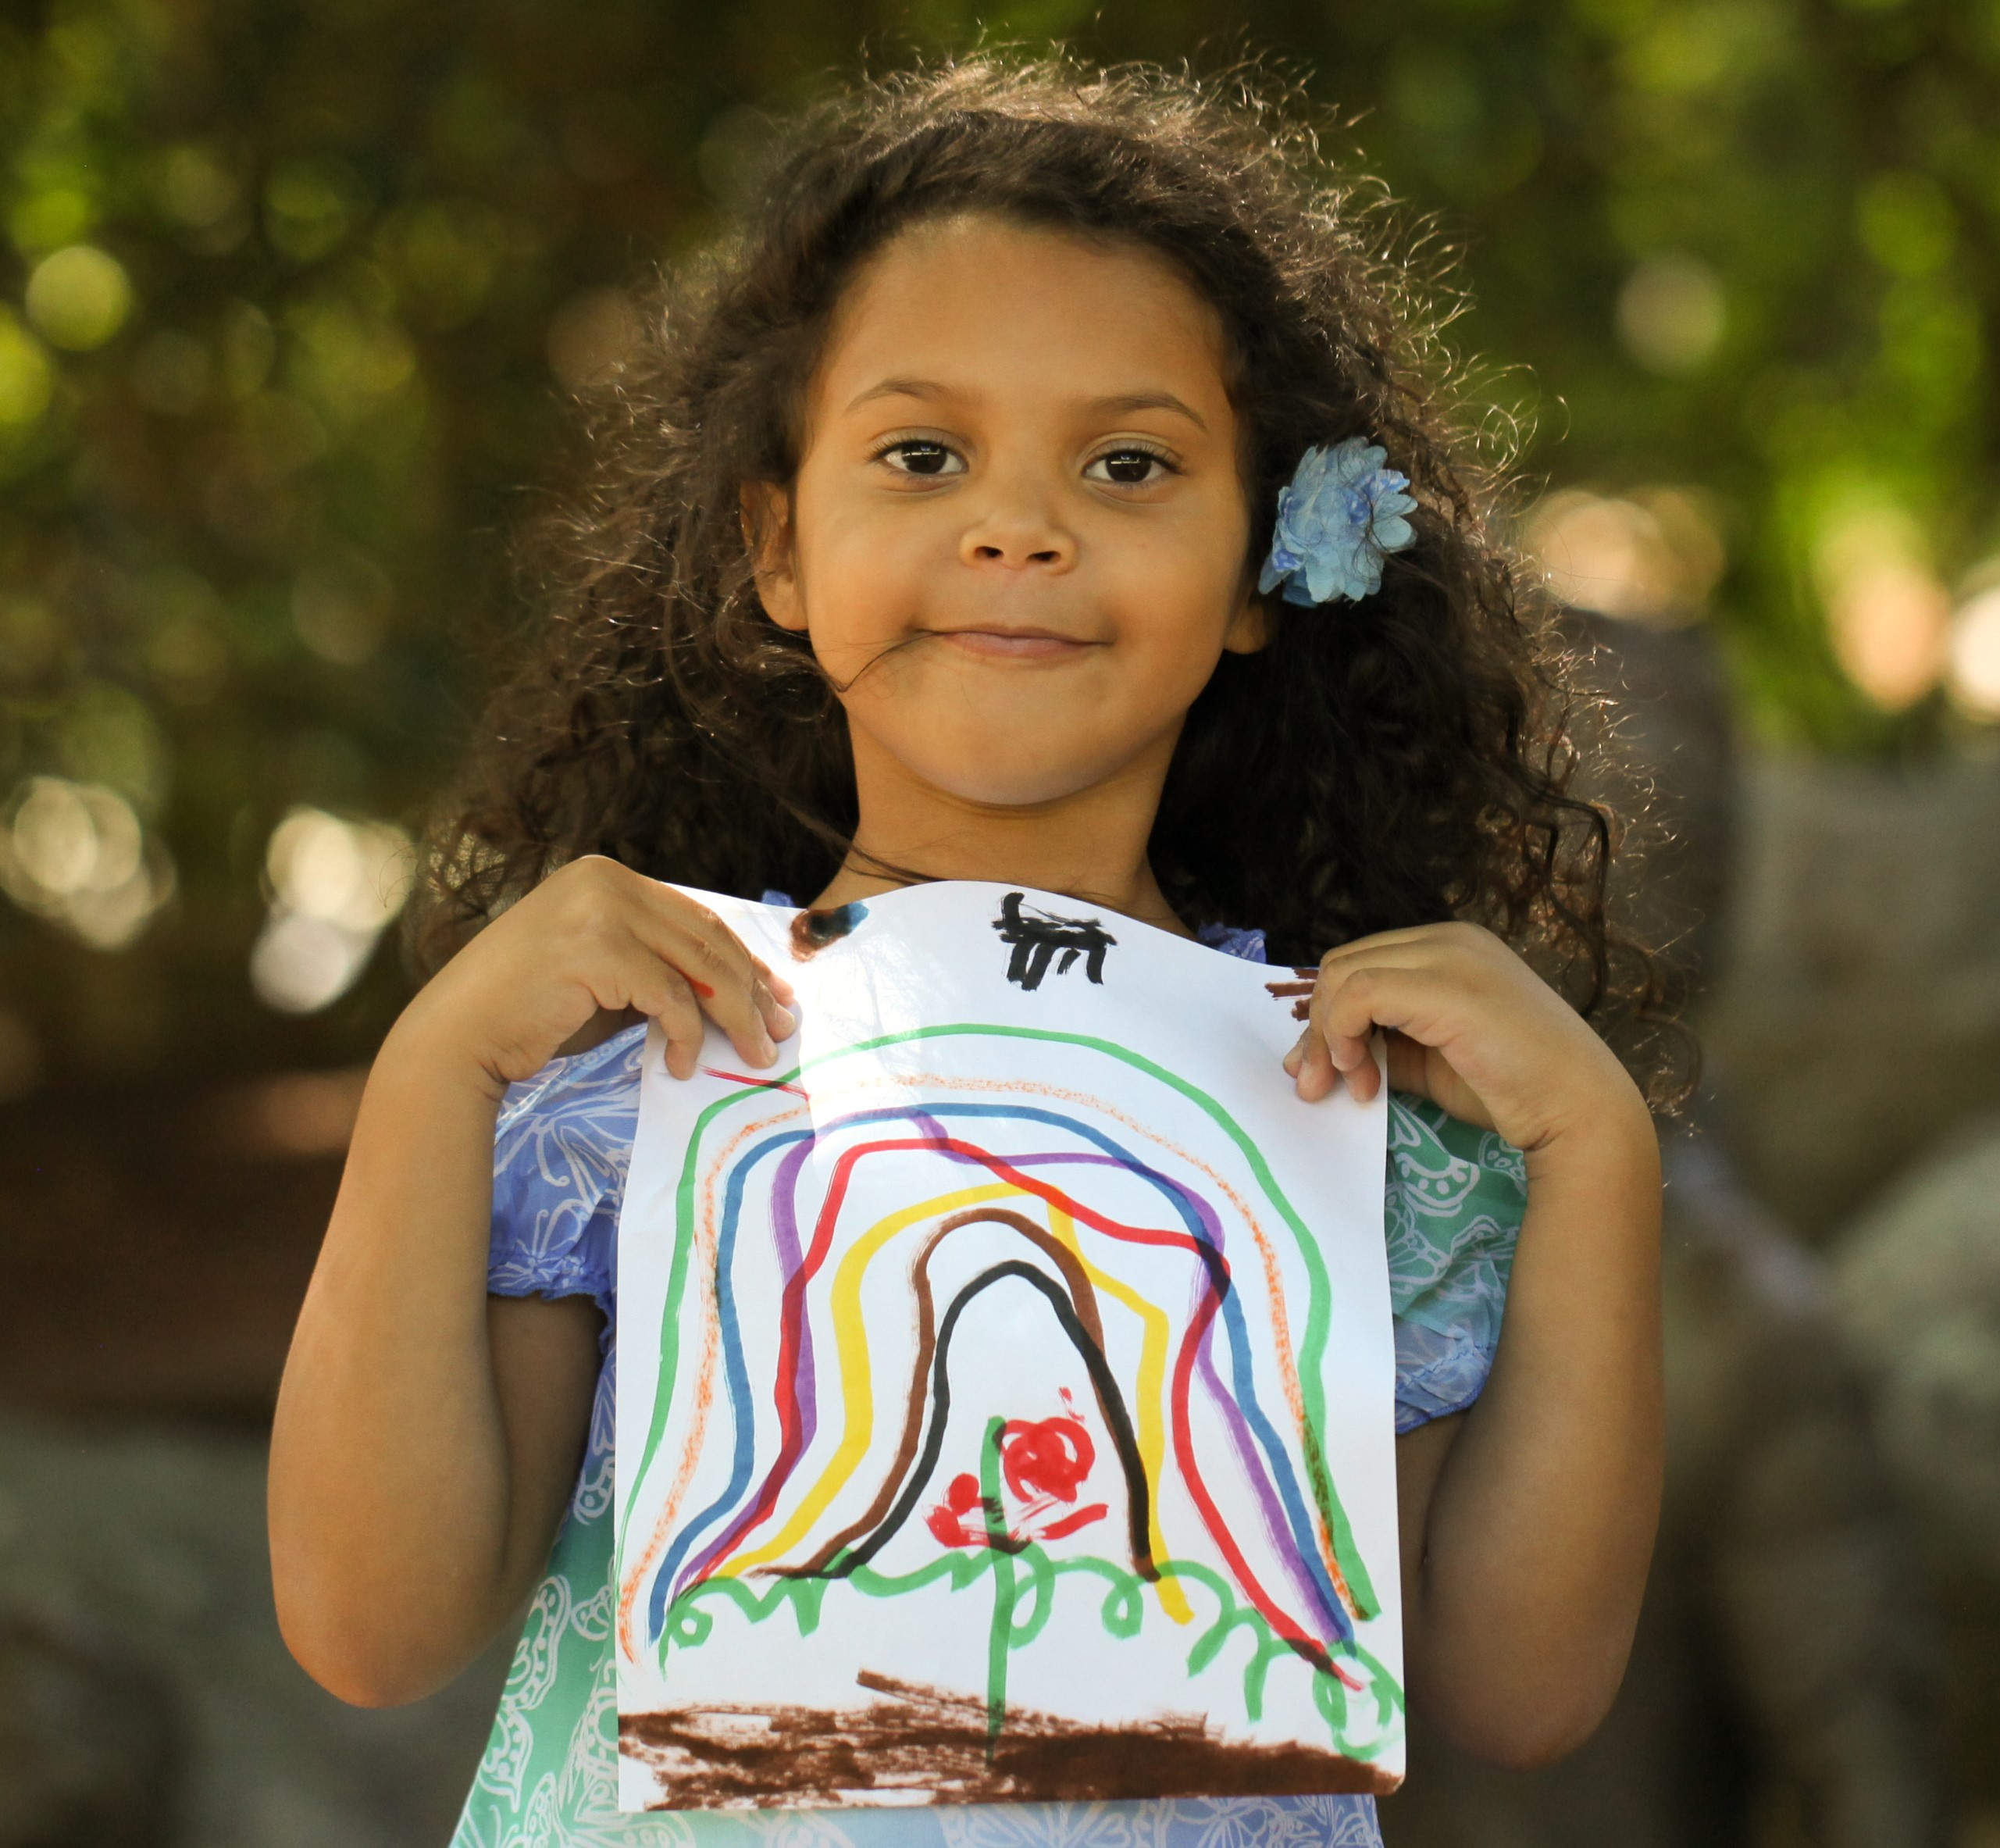 Young girl holds drawing of rainbow